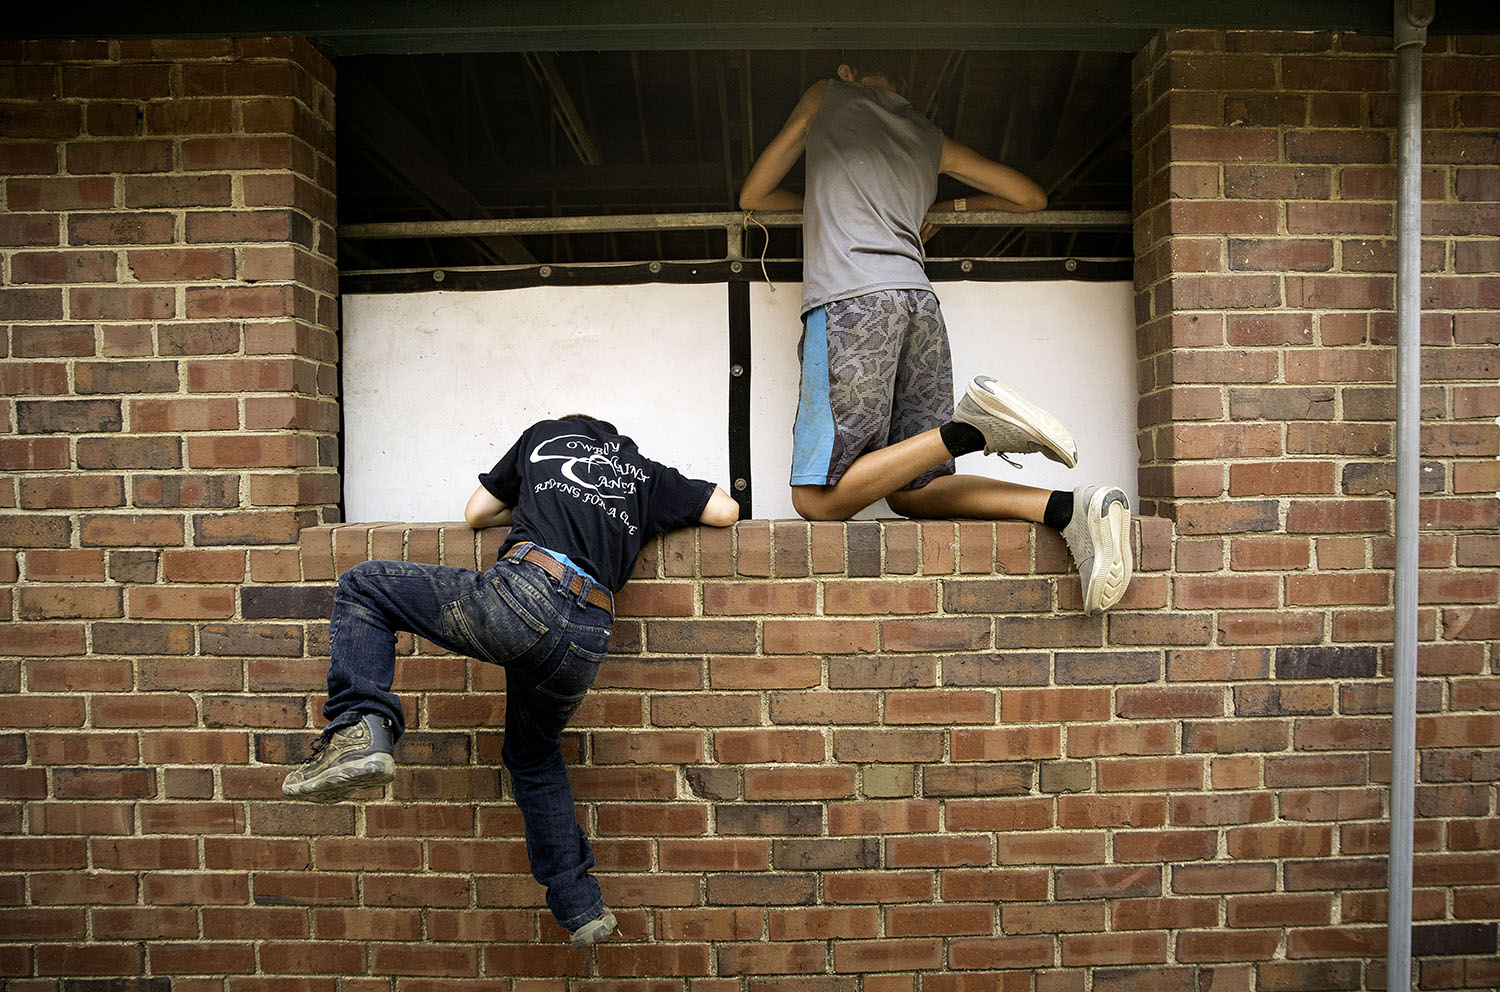 Levi Hanlin, left, tries to scrable up a wall to join his friend Jack Webb as they spy on their family that is visiting on the other side of the barn wall at the Illinois State Fair Monday, Aug. 13, 2018. [Ted Schurter/The State Journal-Register]